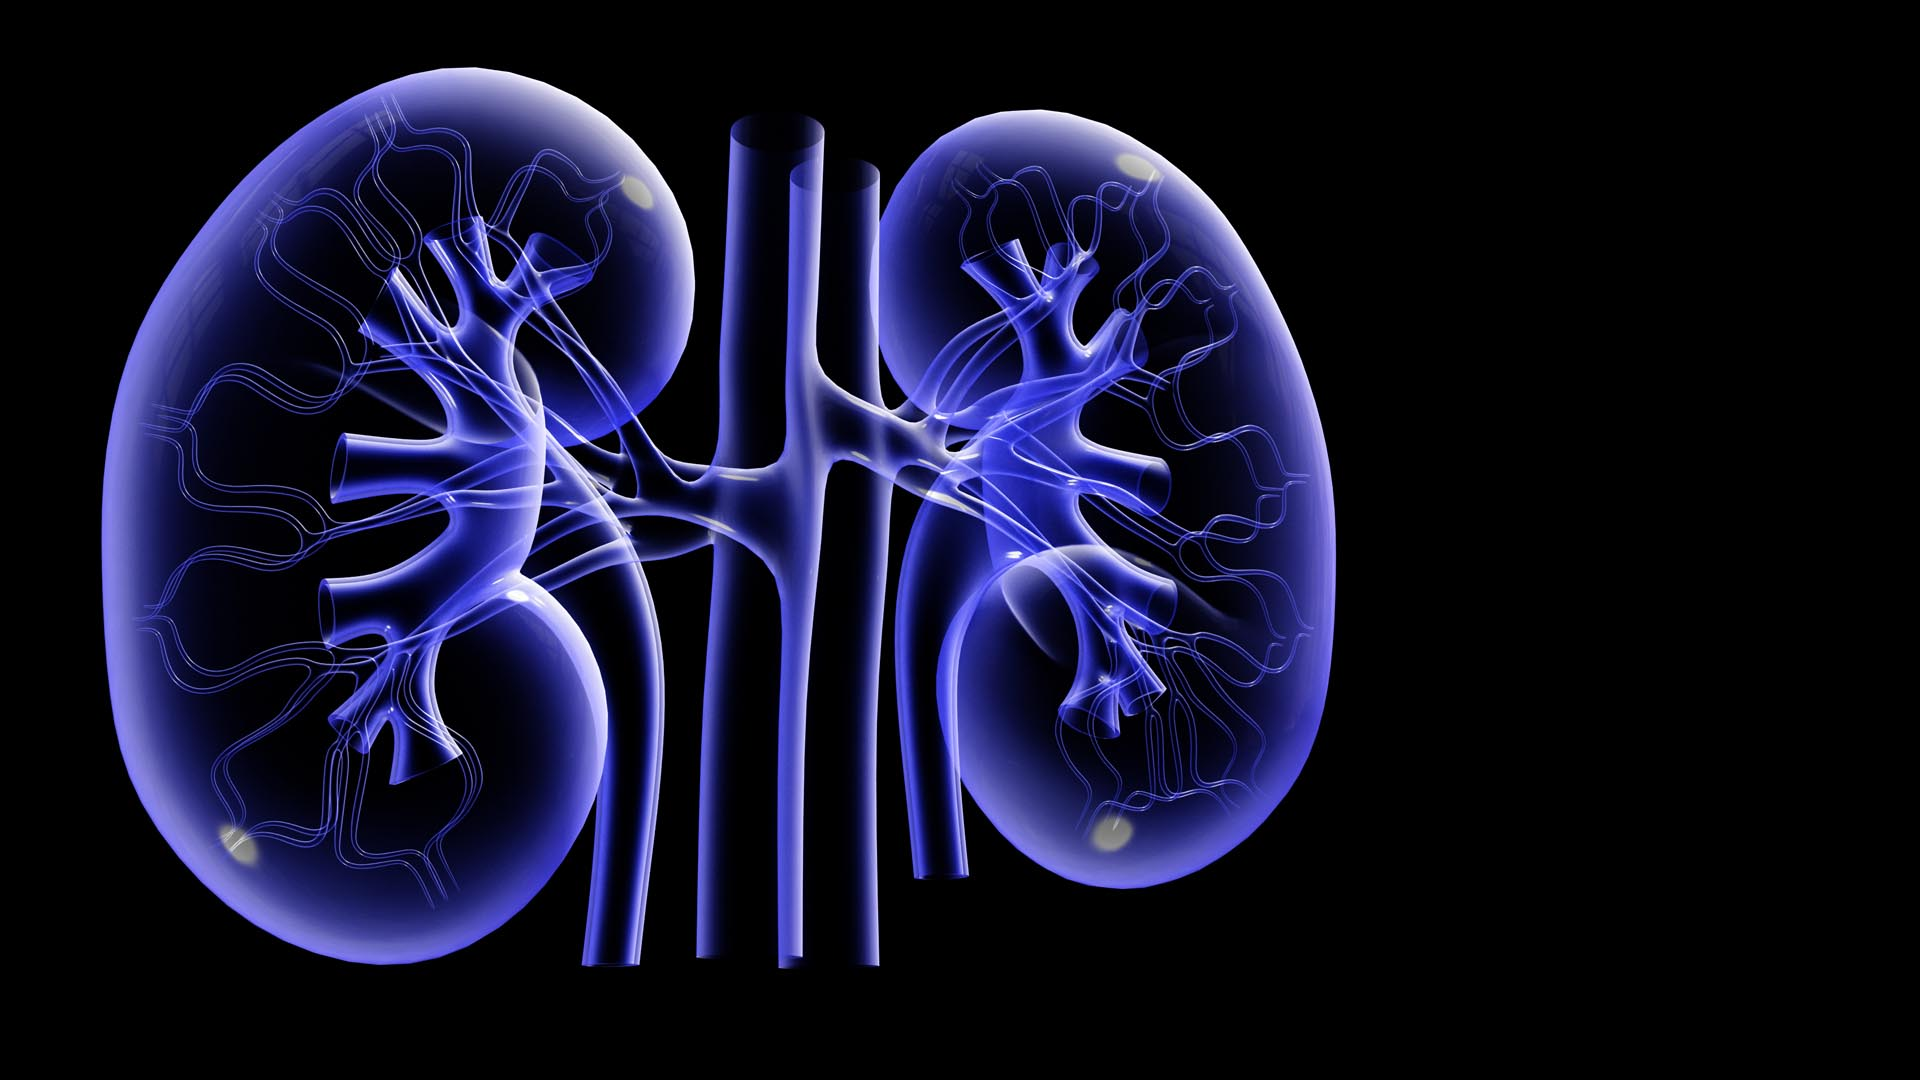 Causes of Kidney Diseases